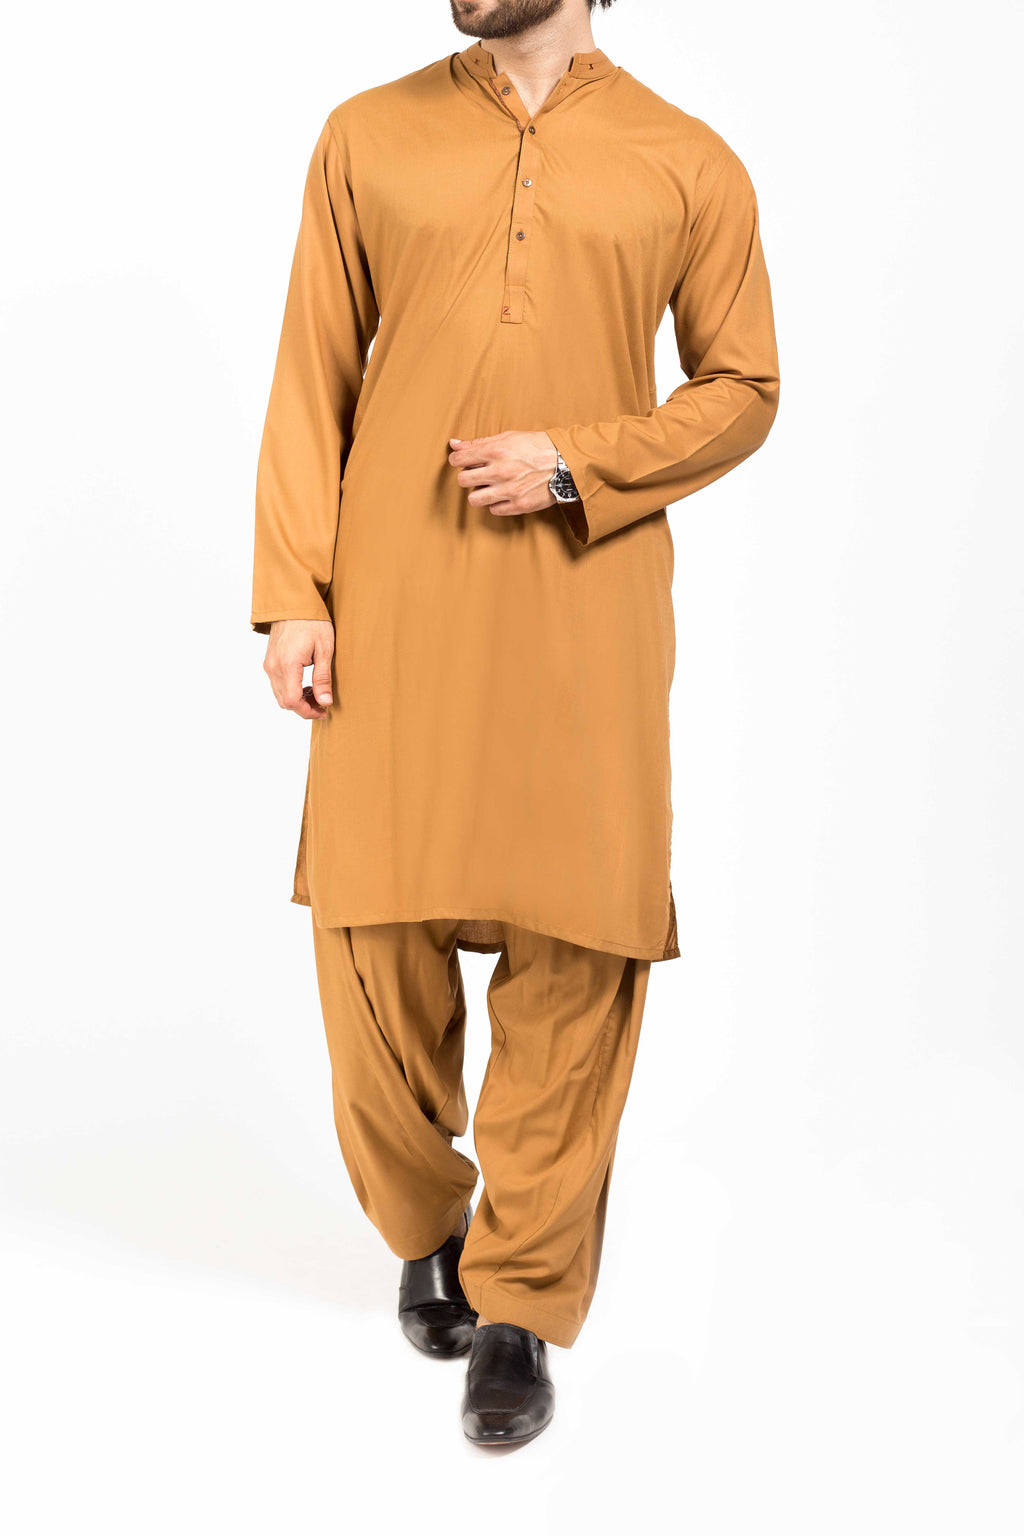 Image of   in Mustard SKU: RQ-39208-Medium-Mustard